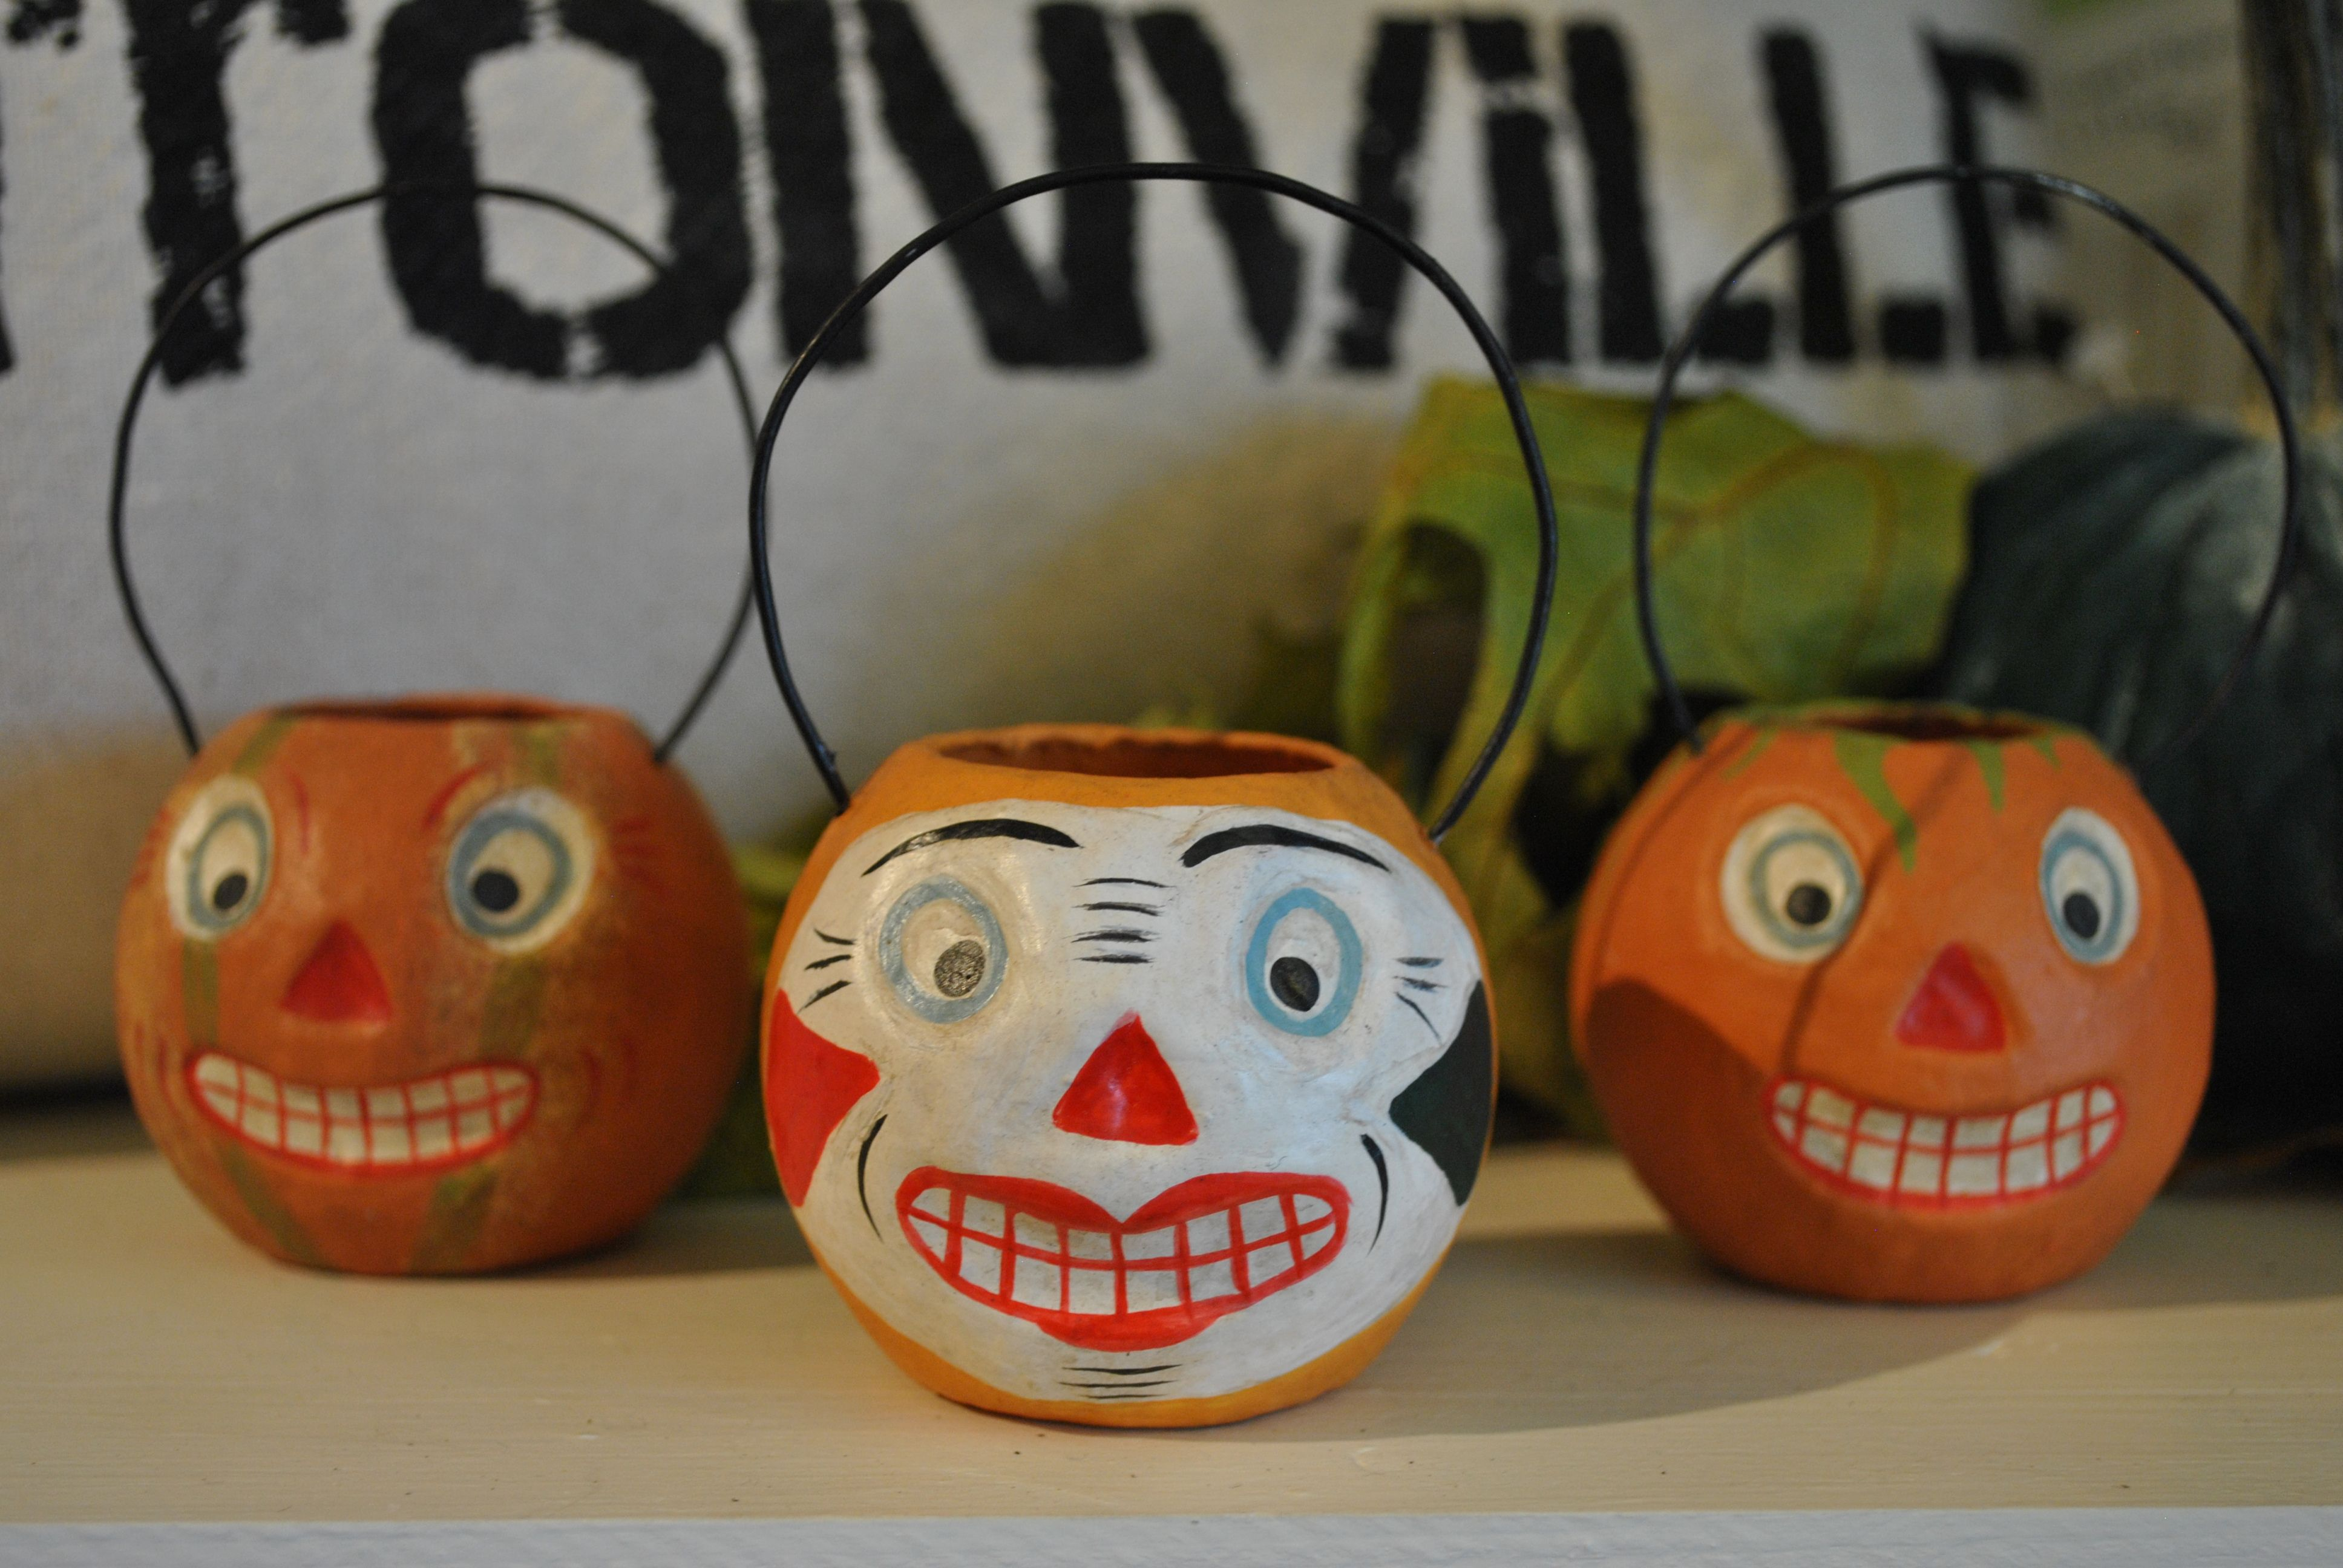 Vintage inspired Halloween decorations fill the store at the moment - fall and halloween decorations